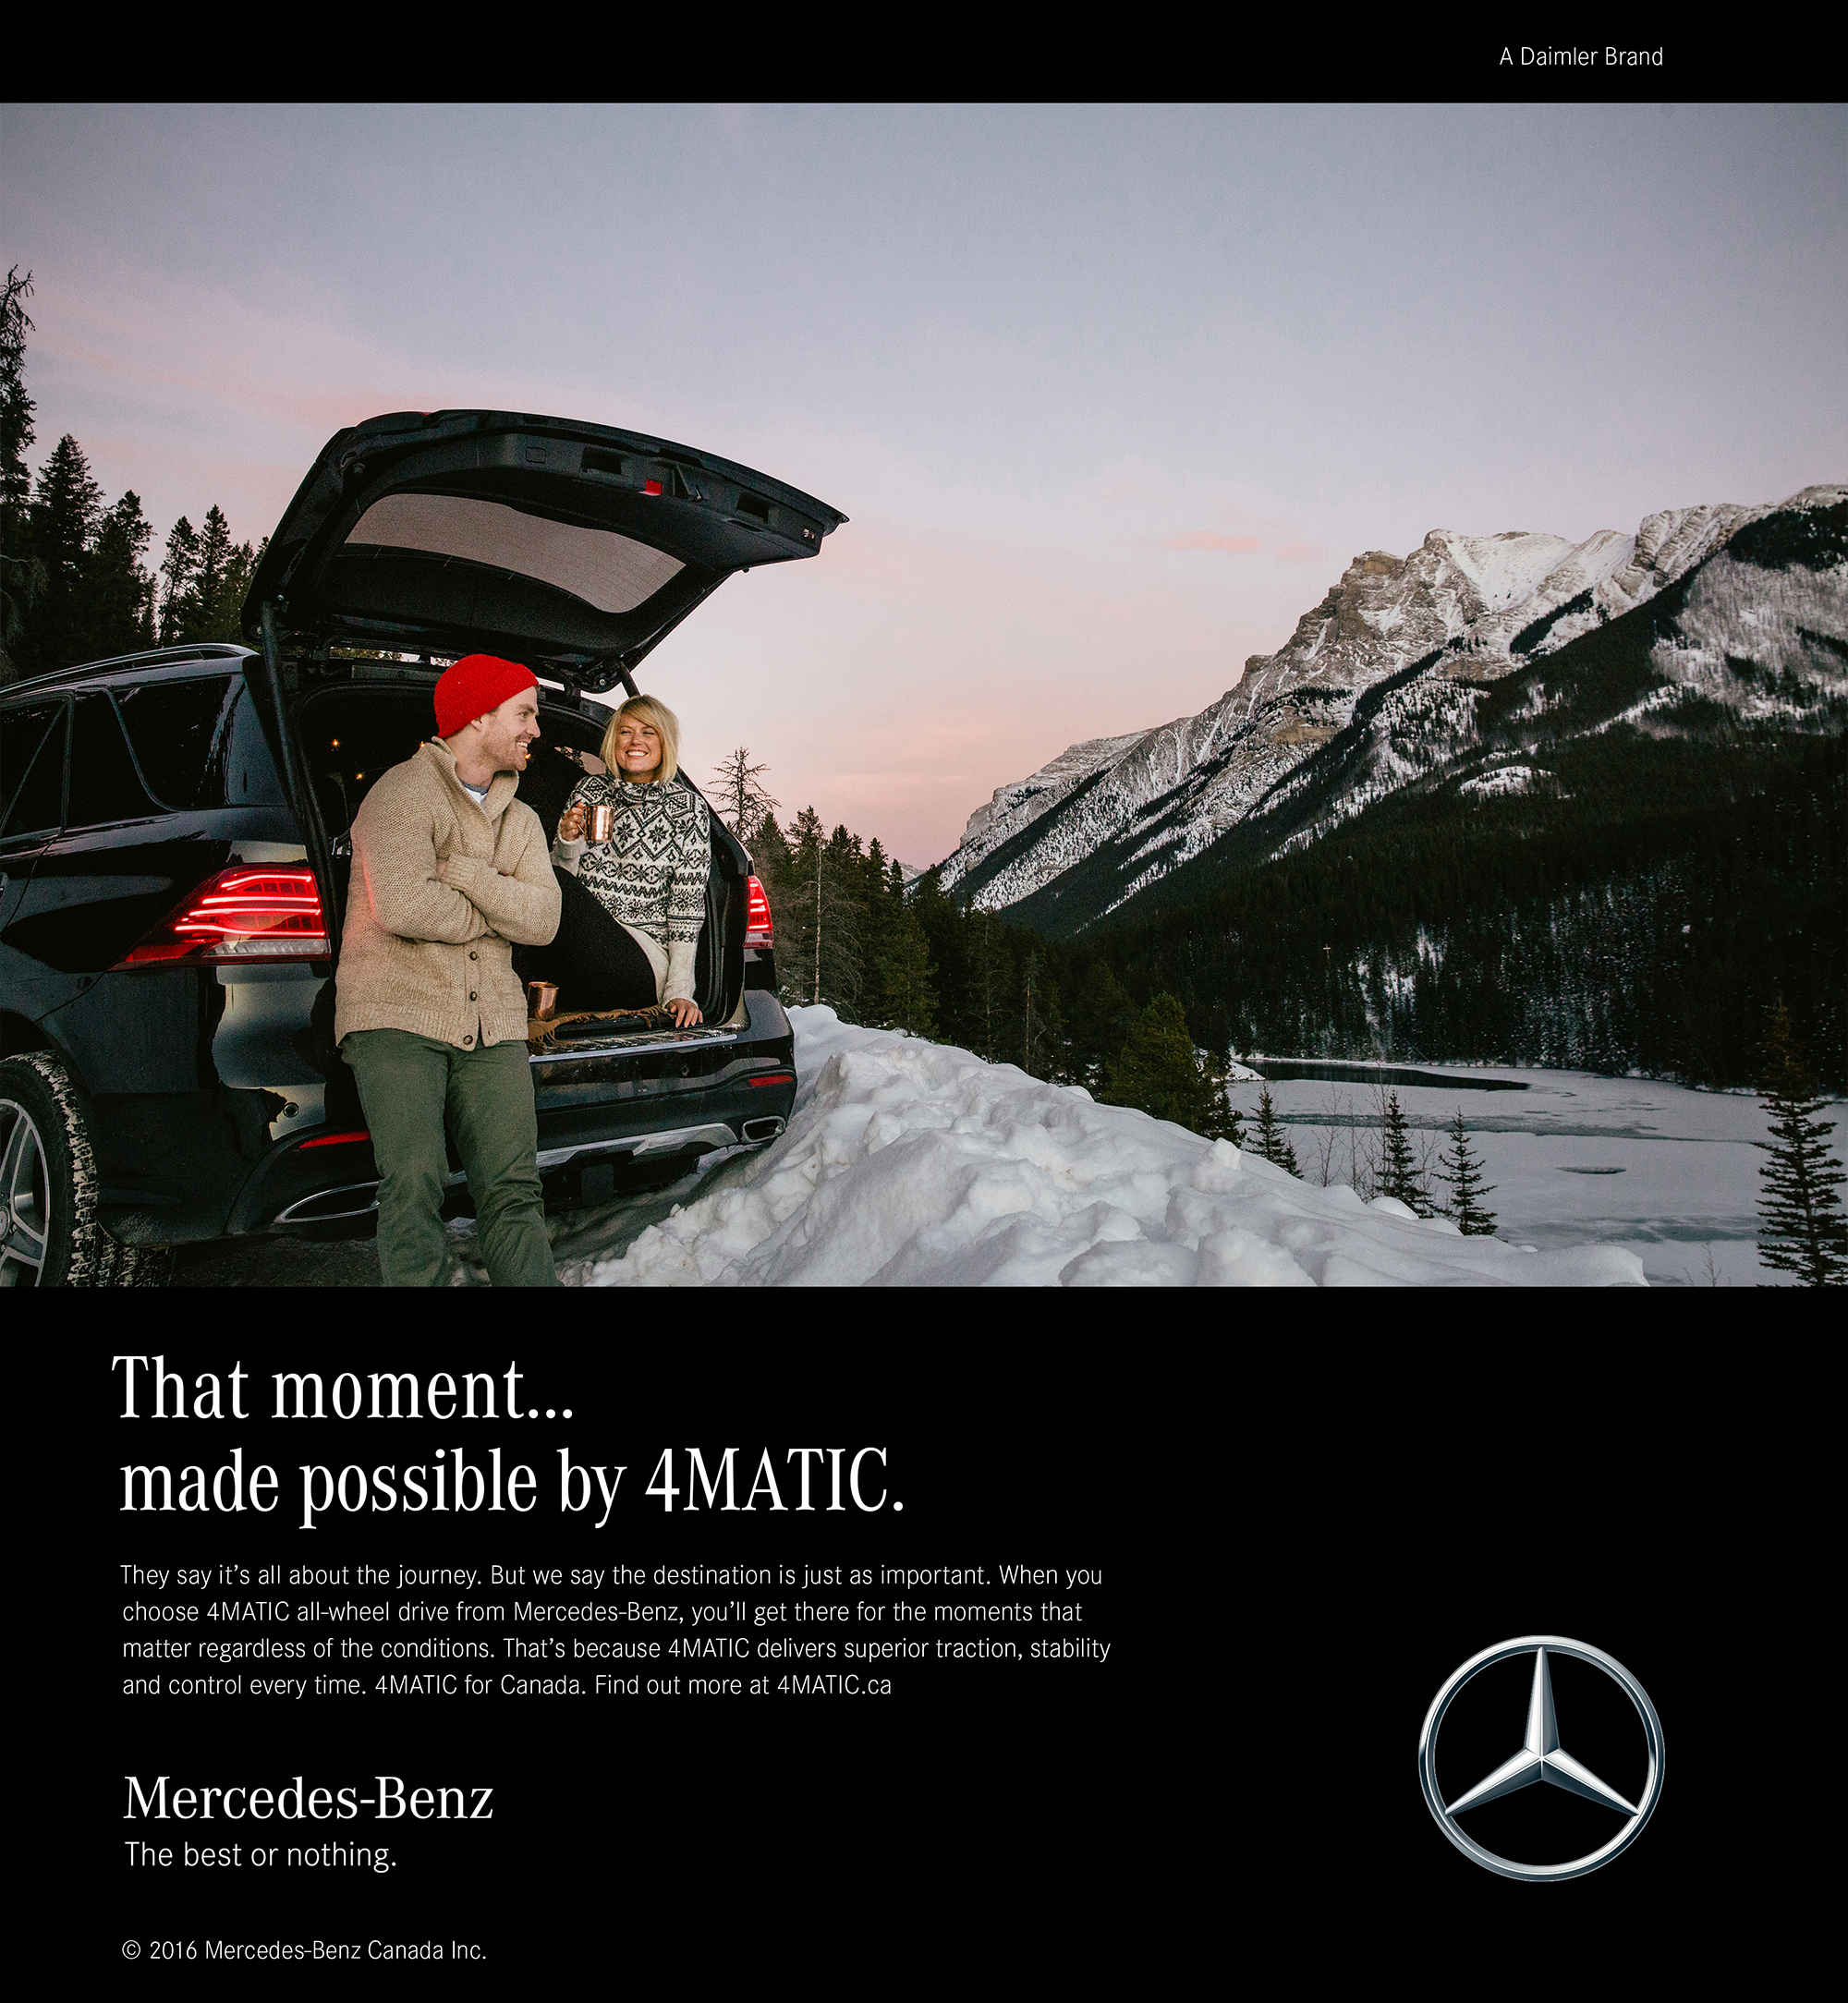 mercedes-benz, commercial photography, great north collective, david guenther, canada